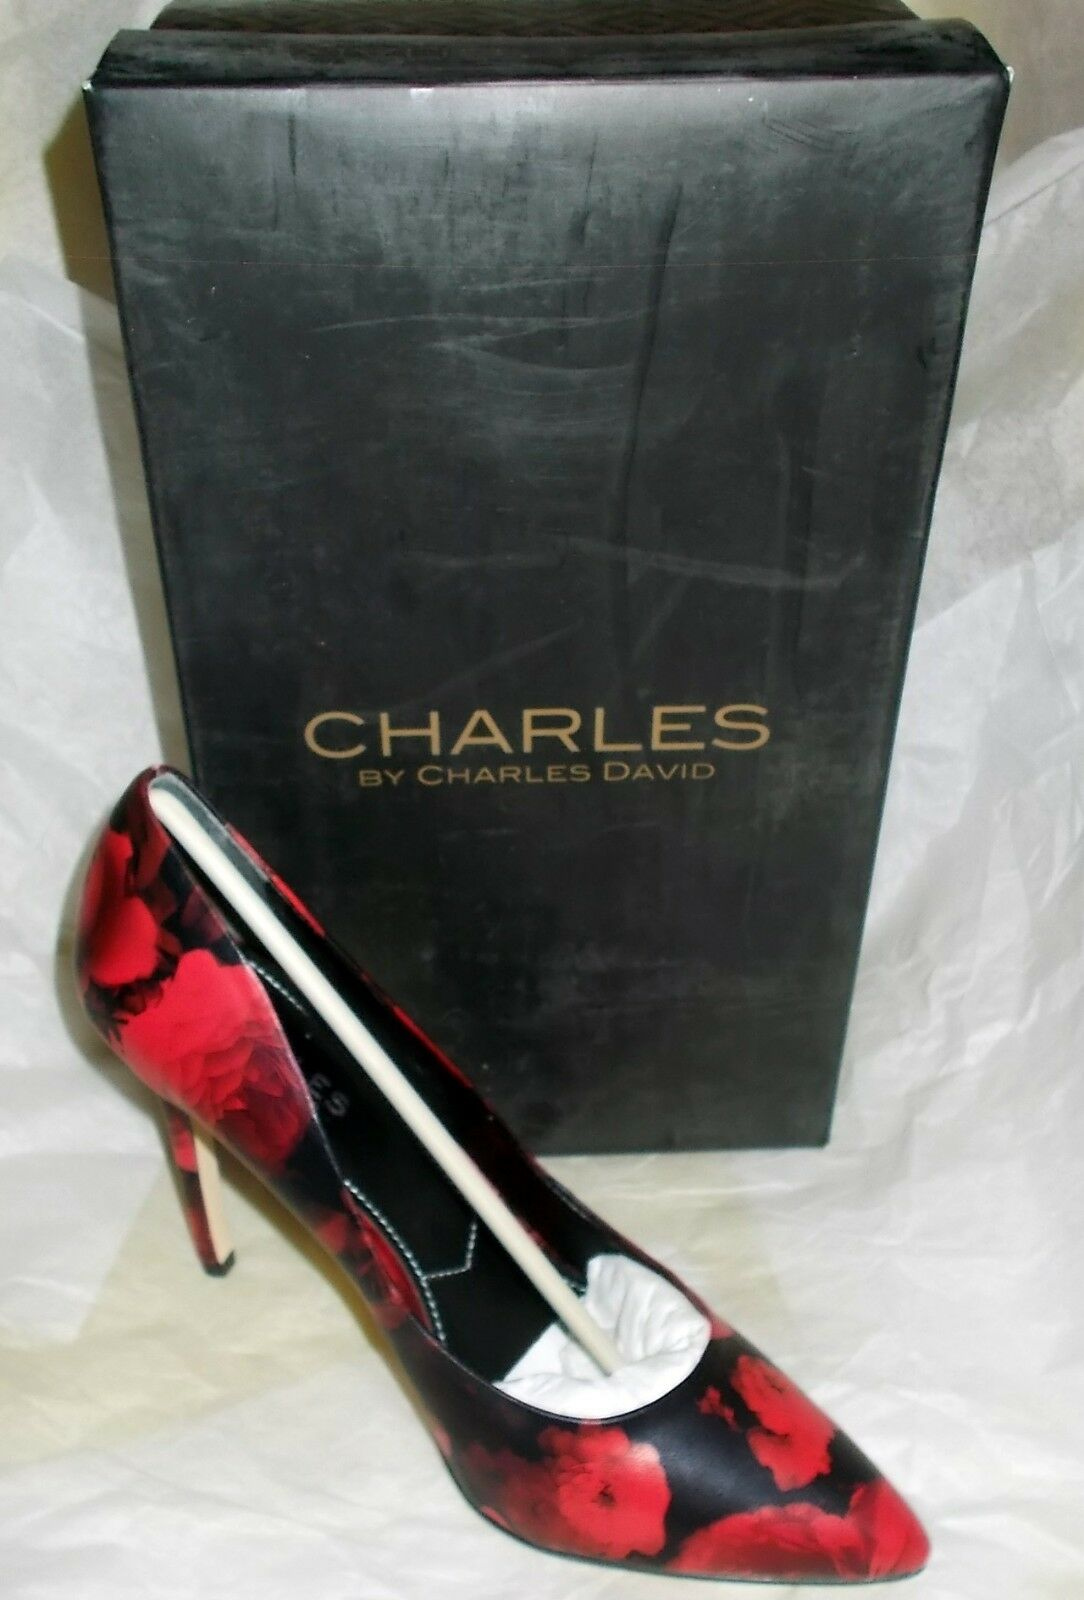 New Charles by by by Charles David Women's Pact Dress Pump pink Size 8.5 9bca20